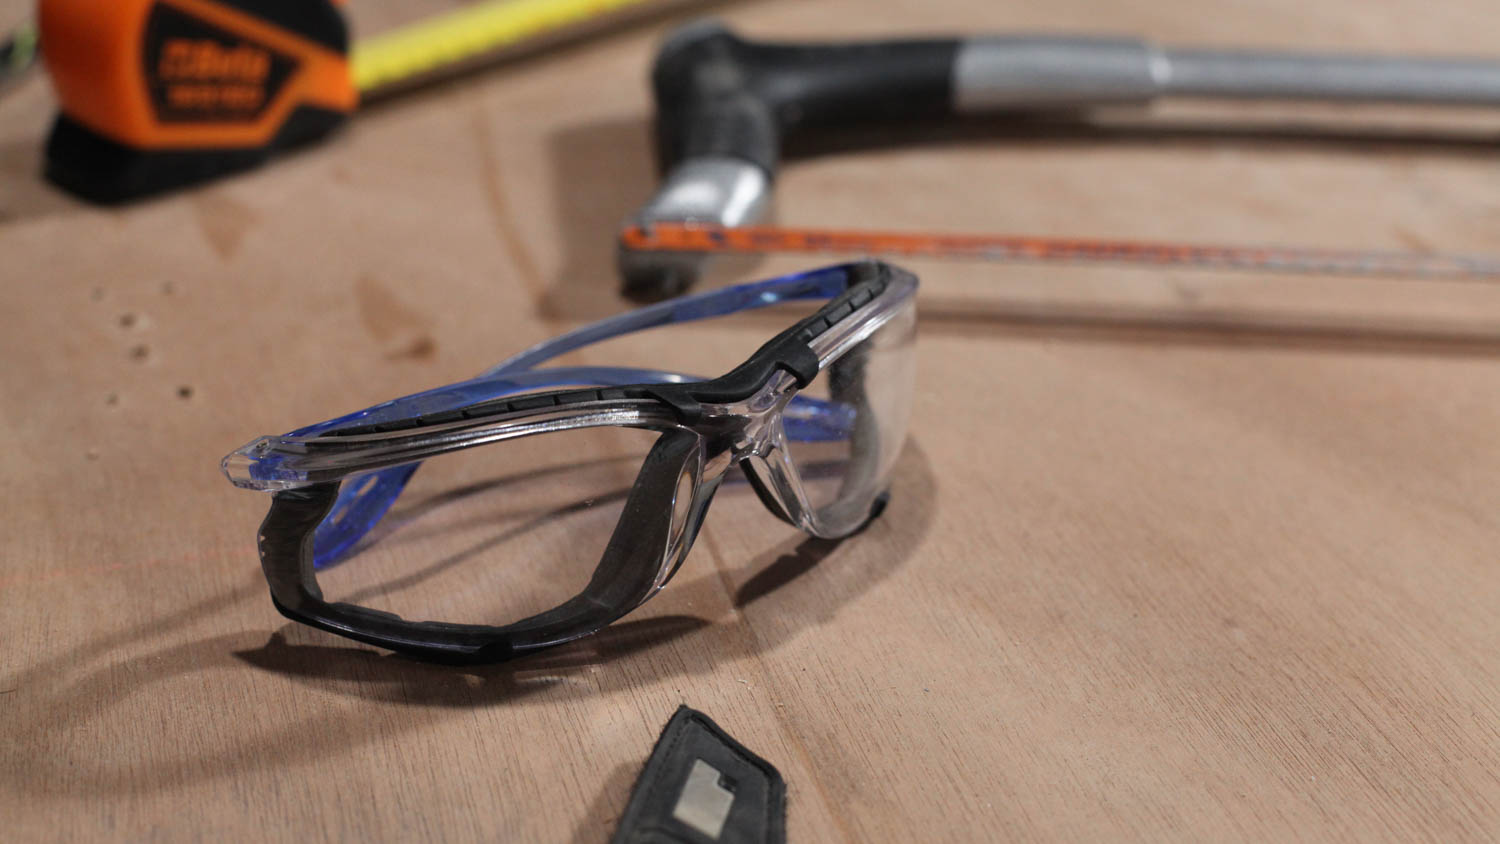 Eye protection - These 3M glasses have detachable side protectors that keep dust and other foreign objects out for good.